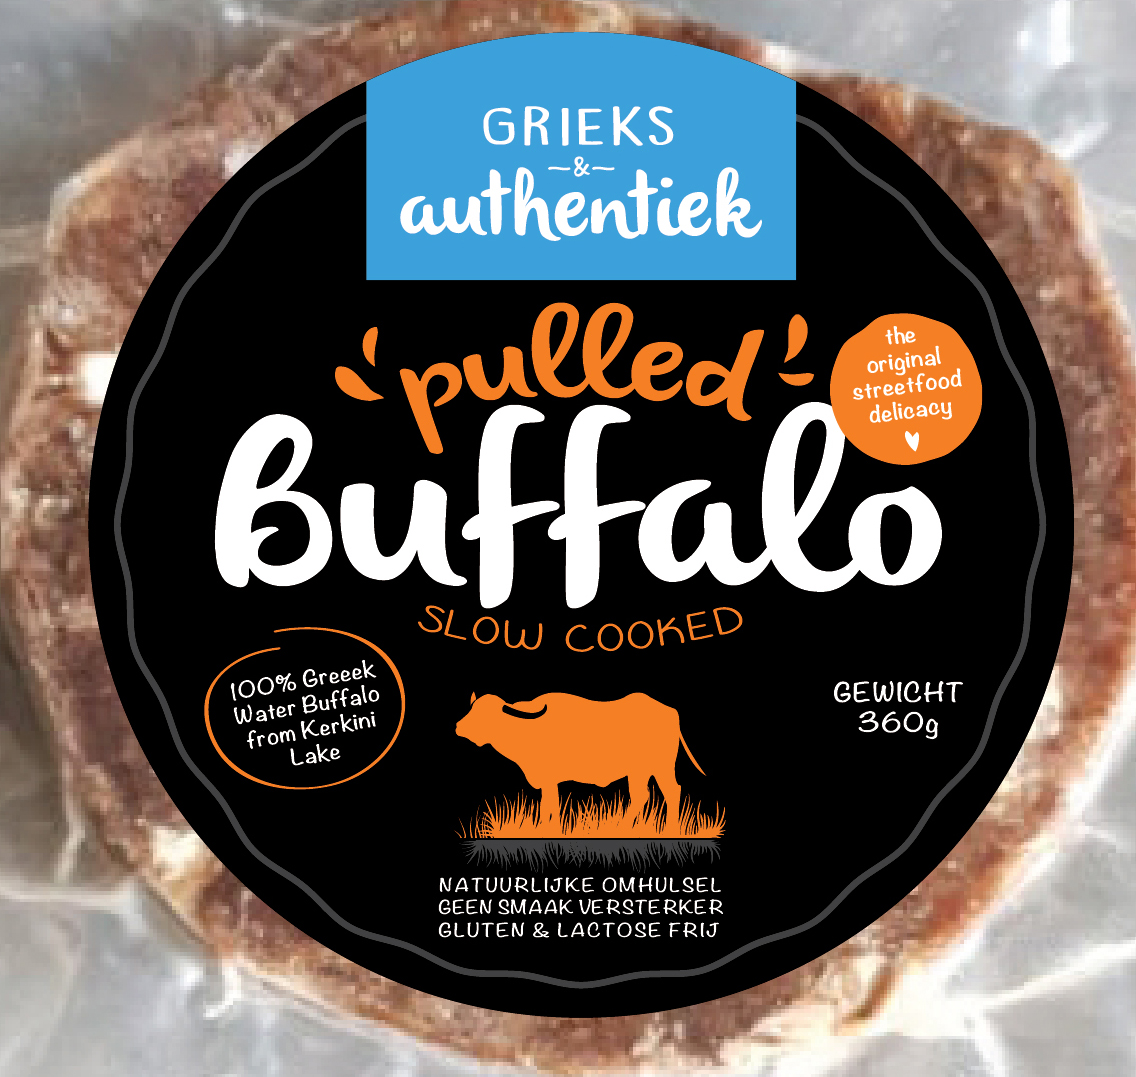 Grieks & Authentiek Pulled buffalo package